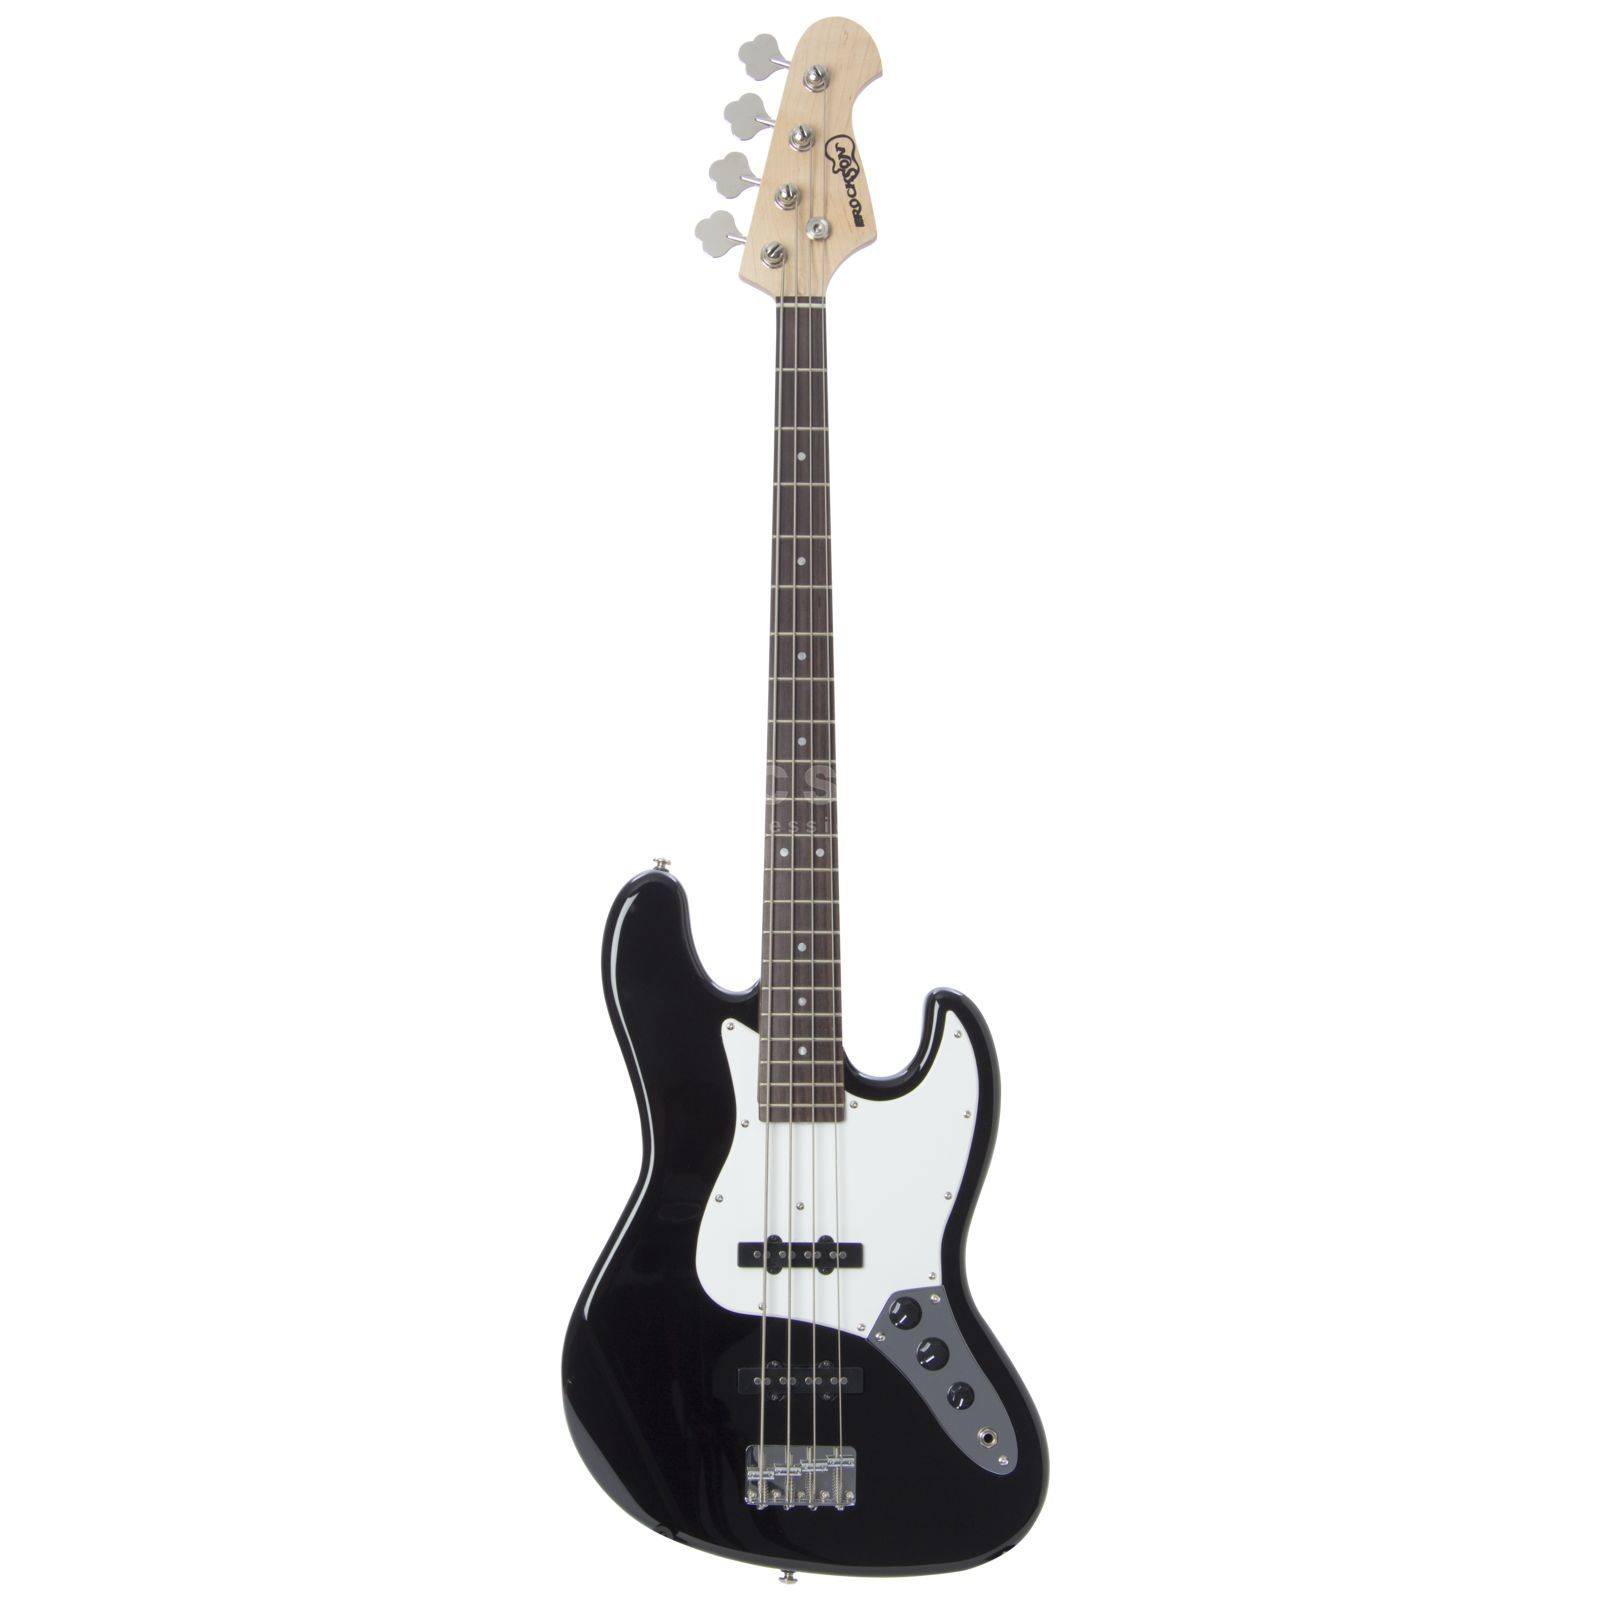 Rockson Bass guitar R-JB99 BK 4-String Black High gloss Zdjęcie produktu